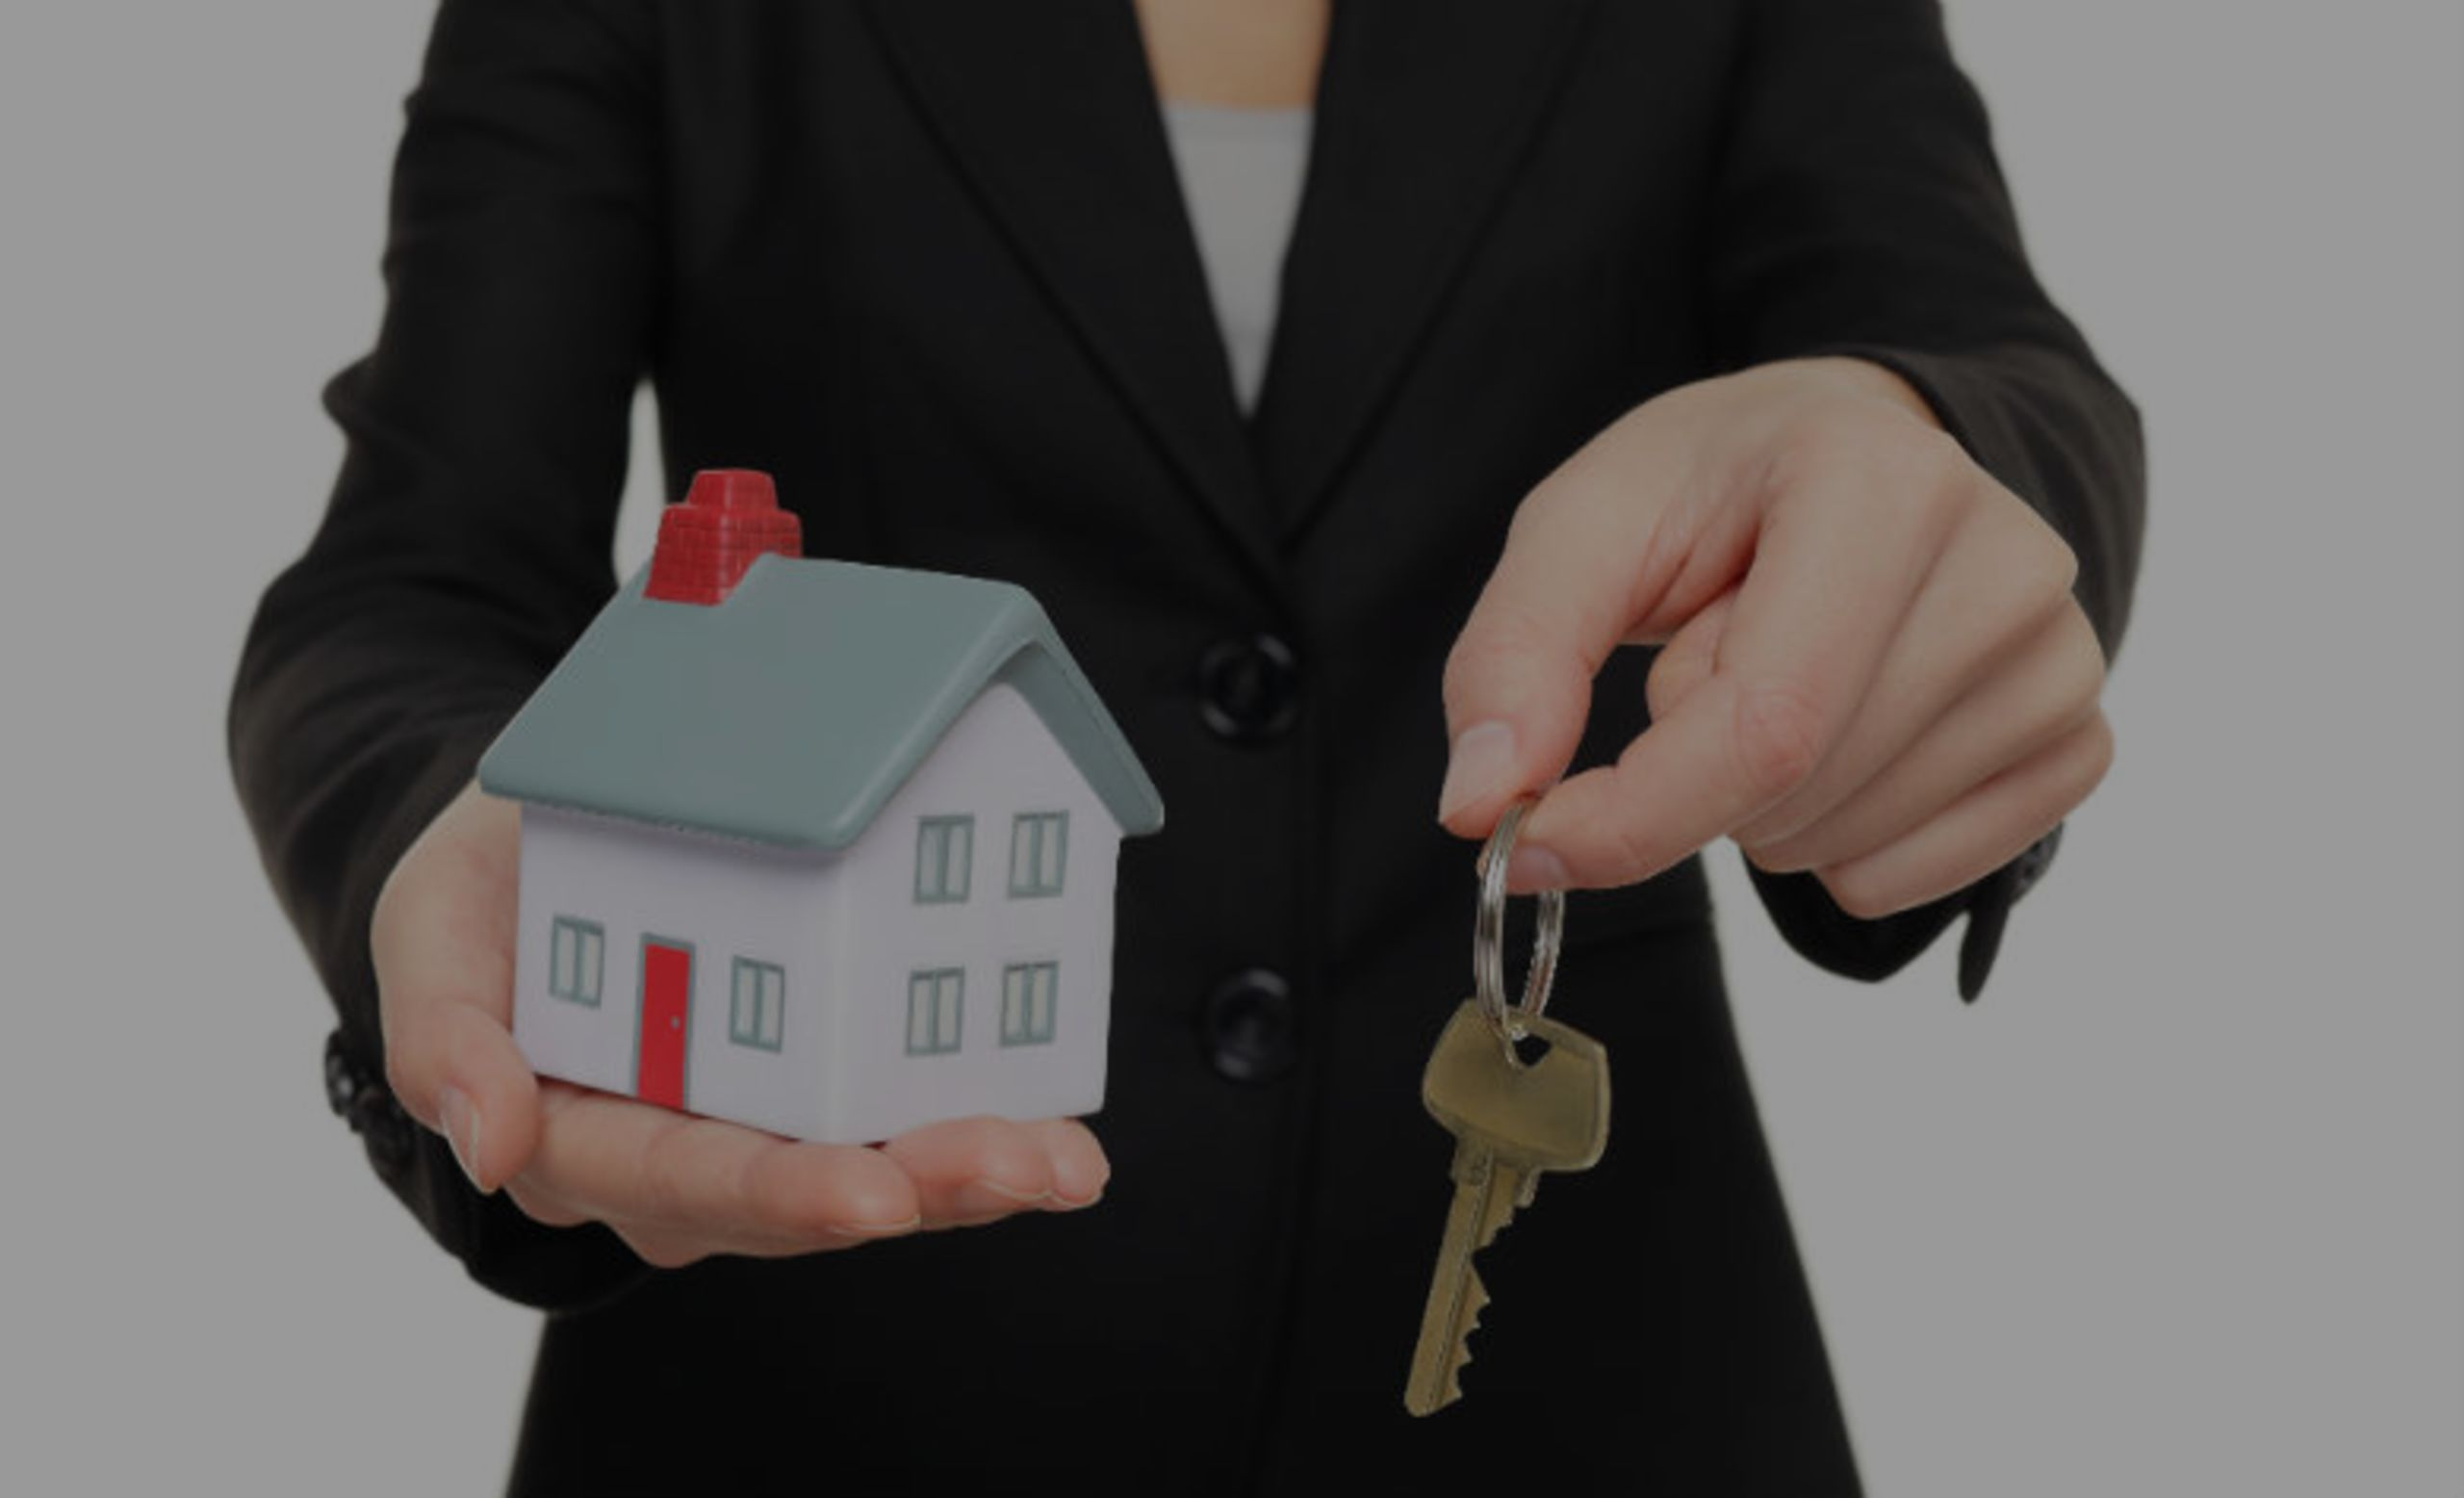 Let's buy a house! What to look for in a real estate agent.